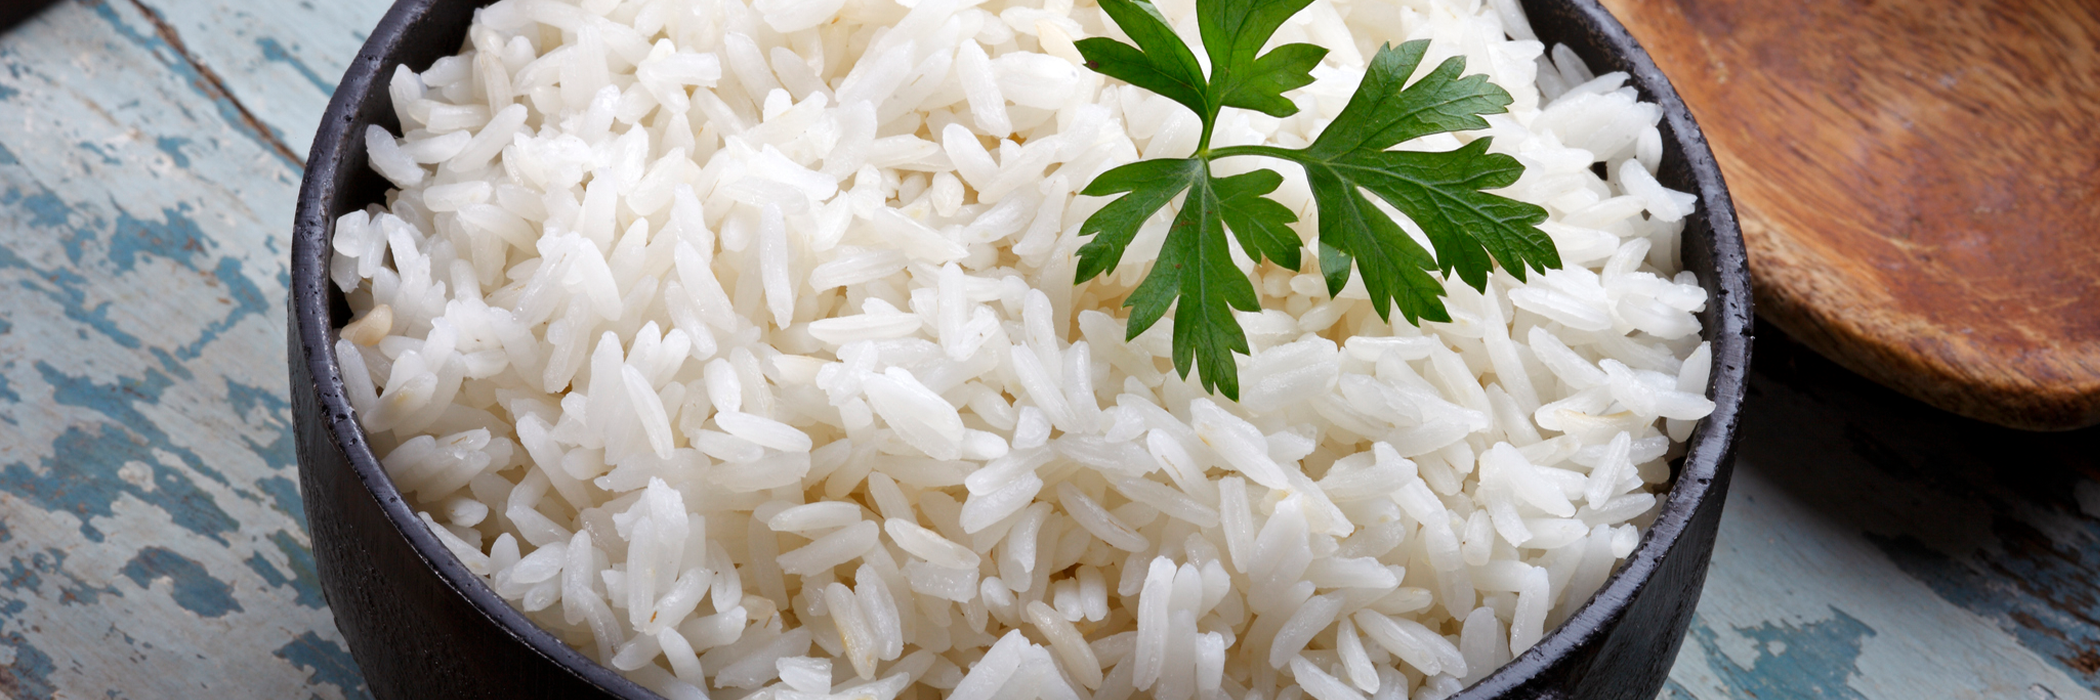 Image of a pot of cooked rice.